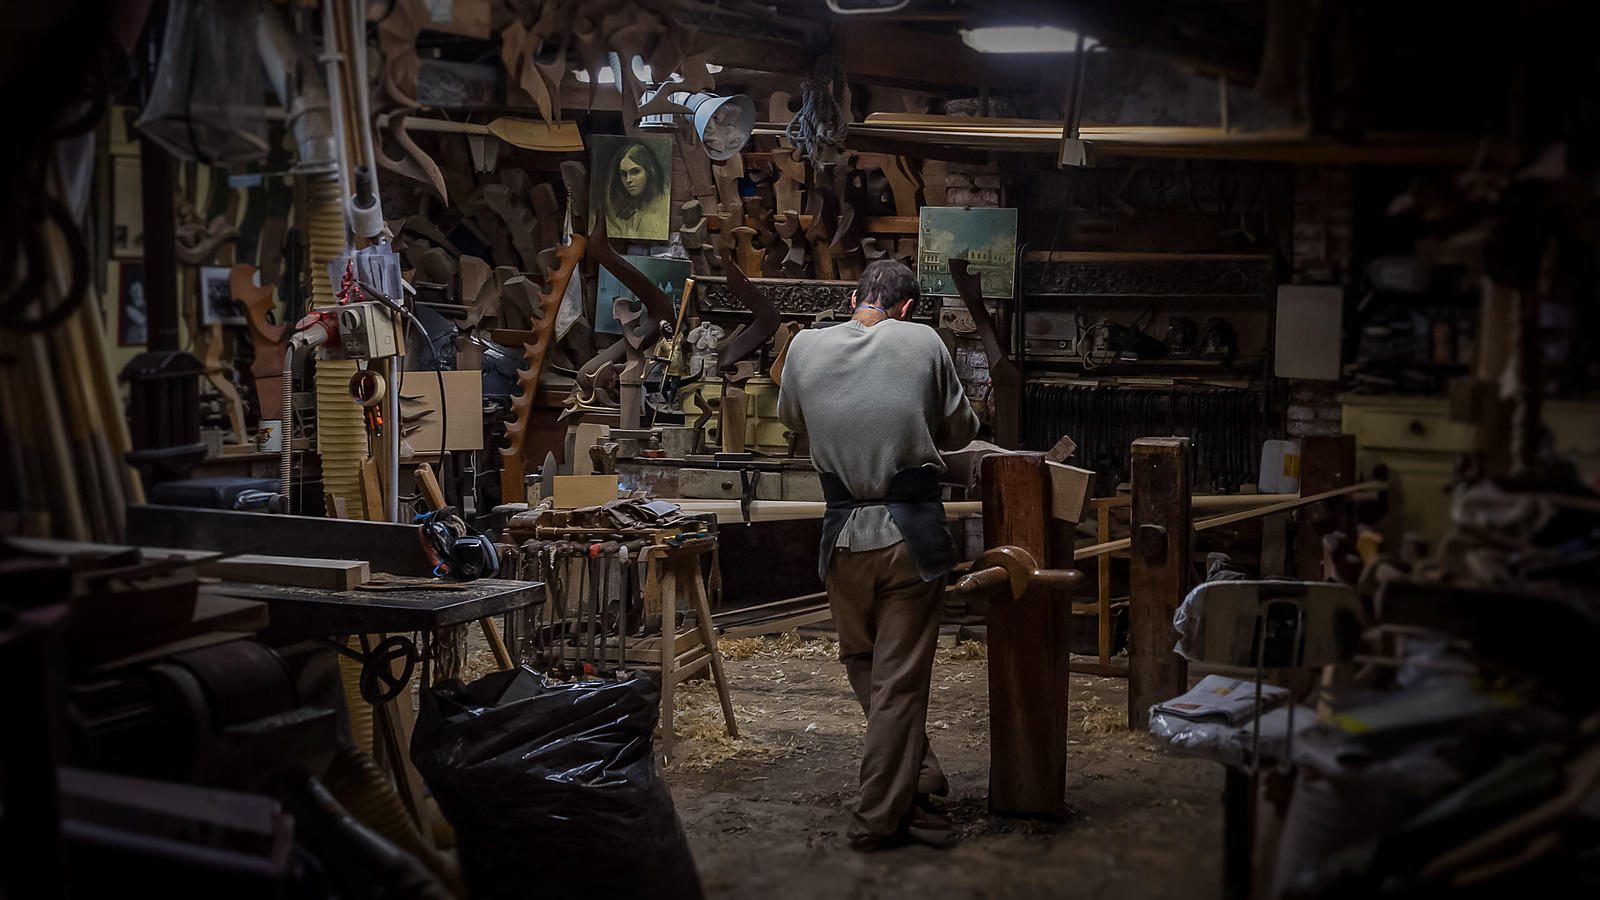 Gondola Builder in workshop, Venice